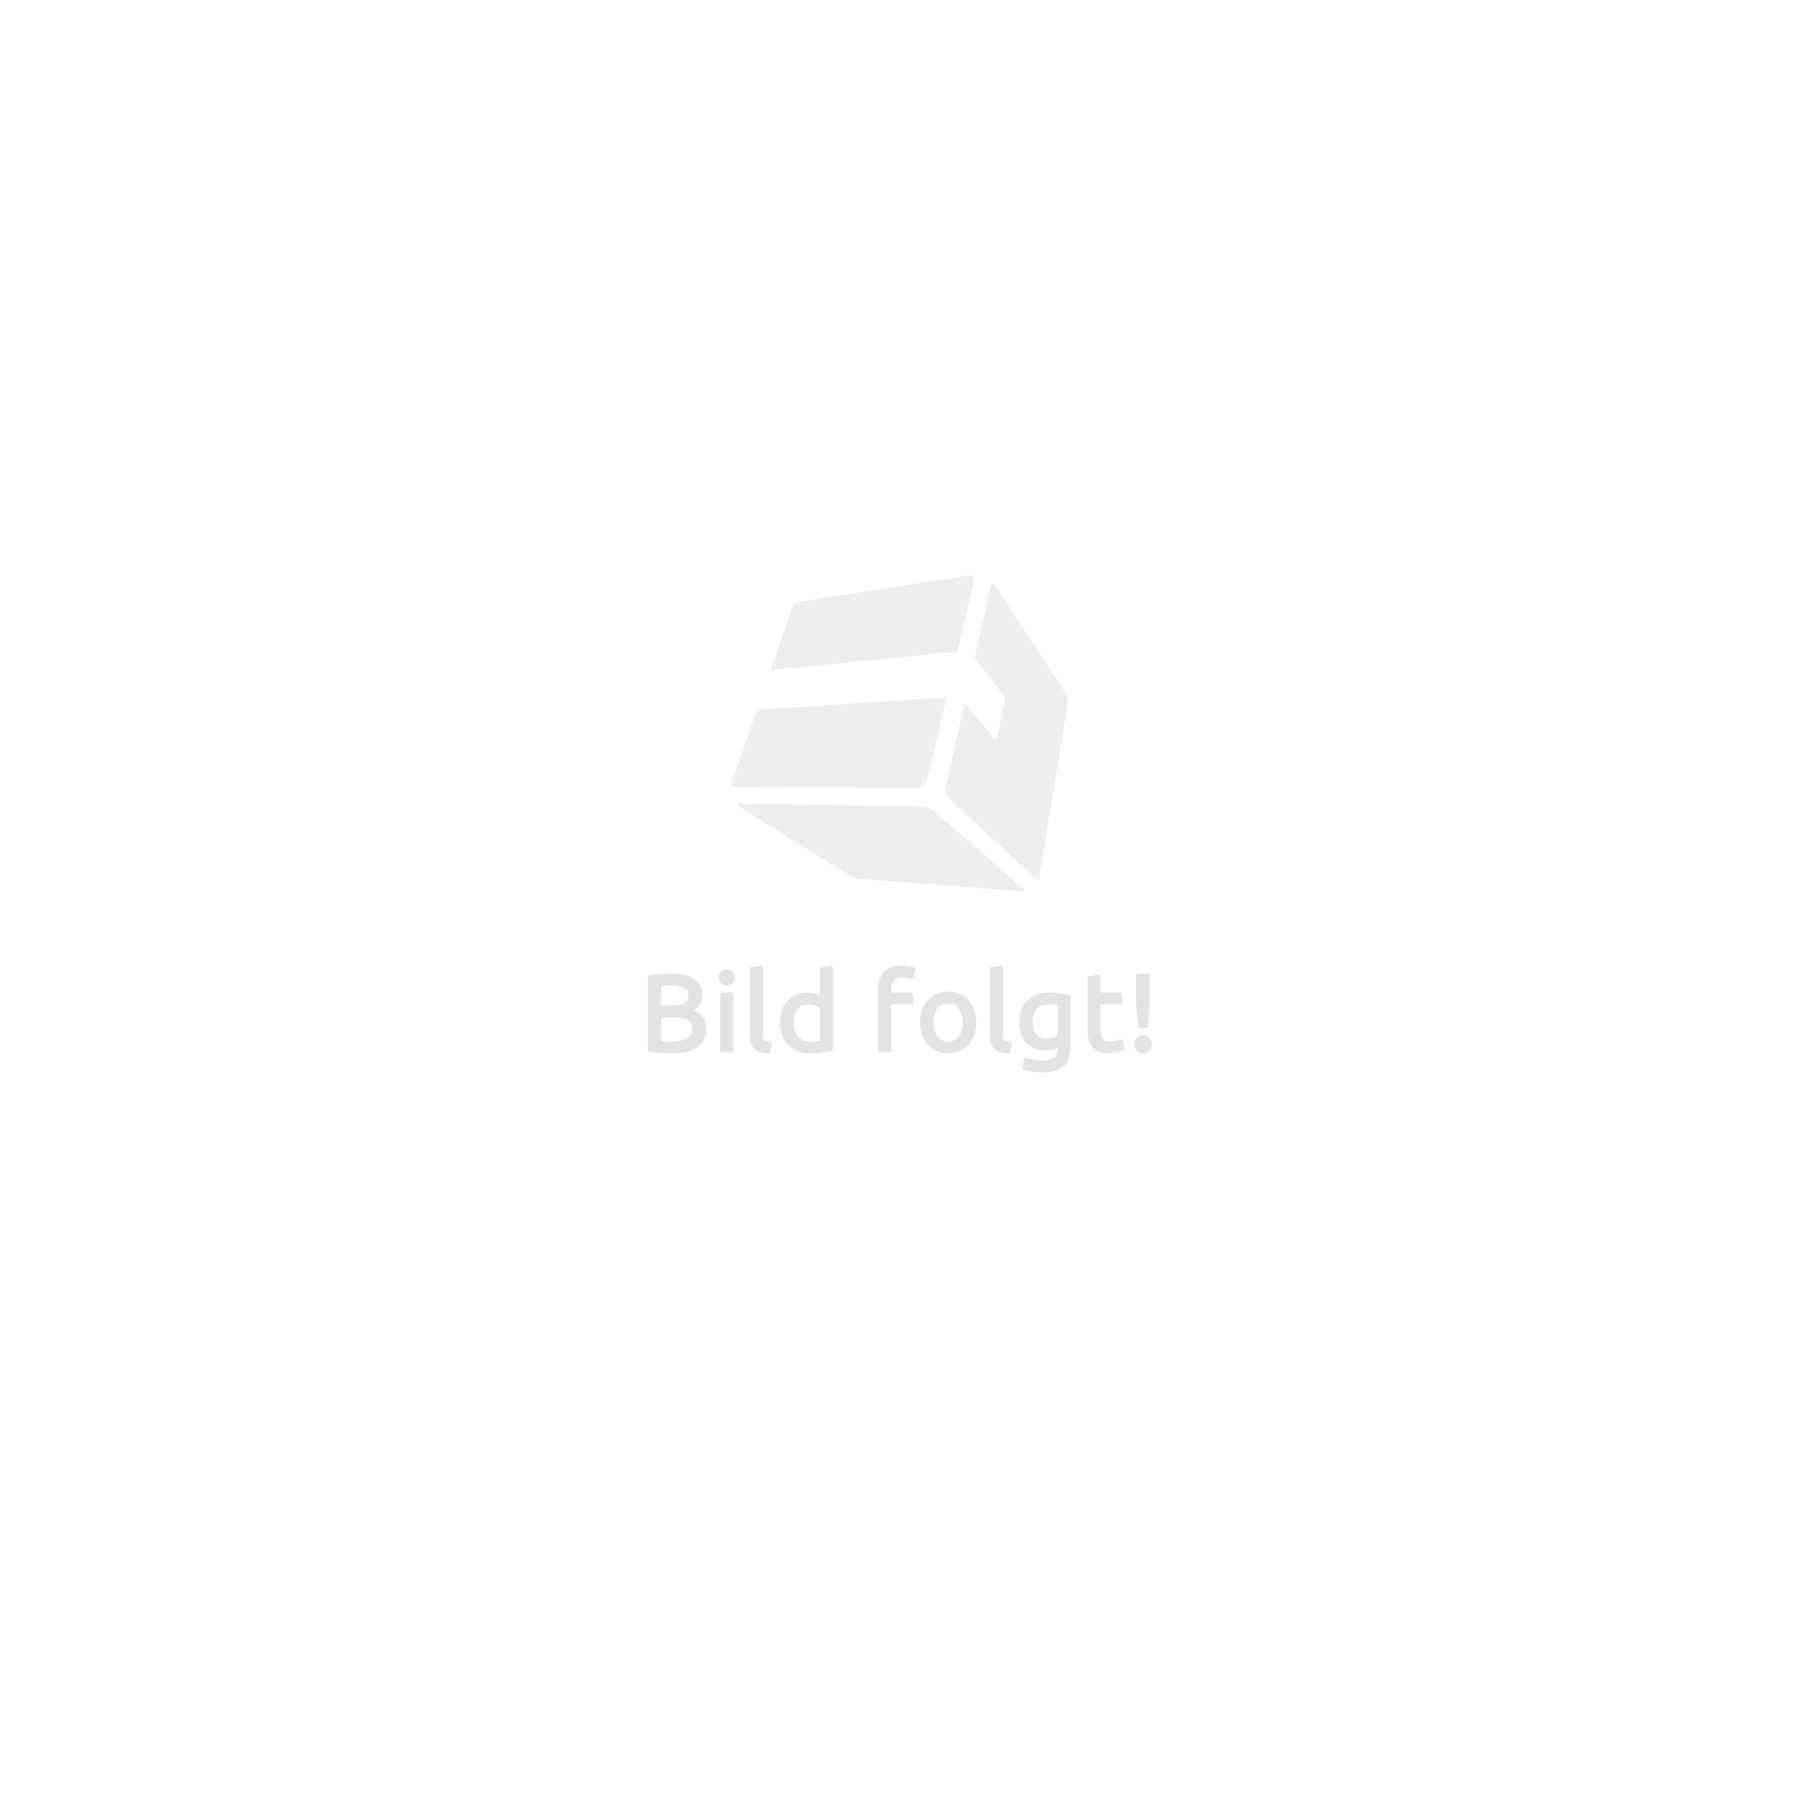 Aluminium double side awning privacy screen black 200 x 600 cm